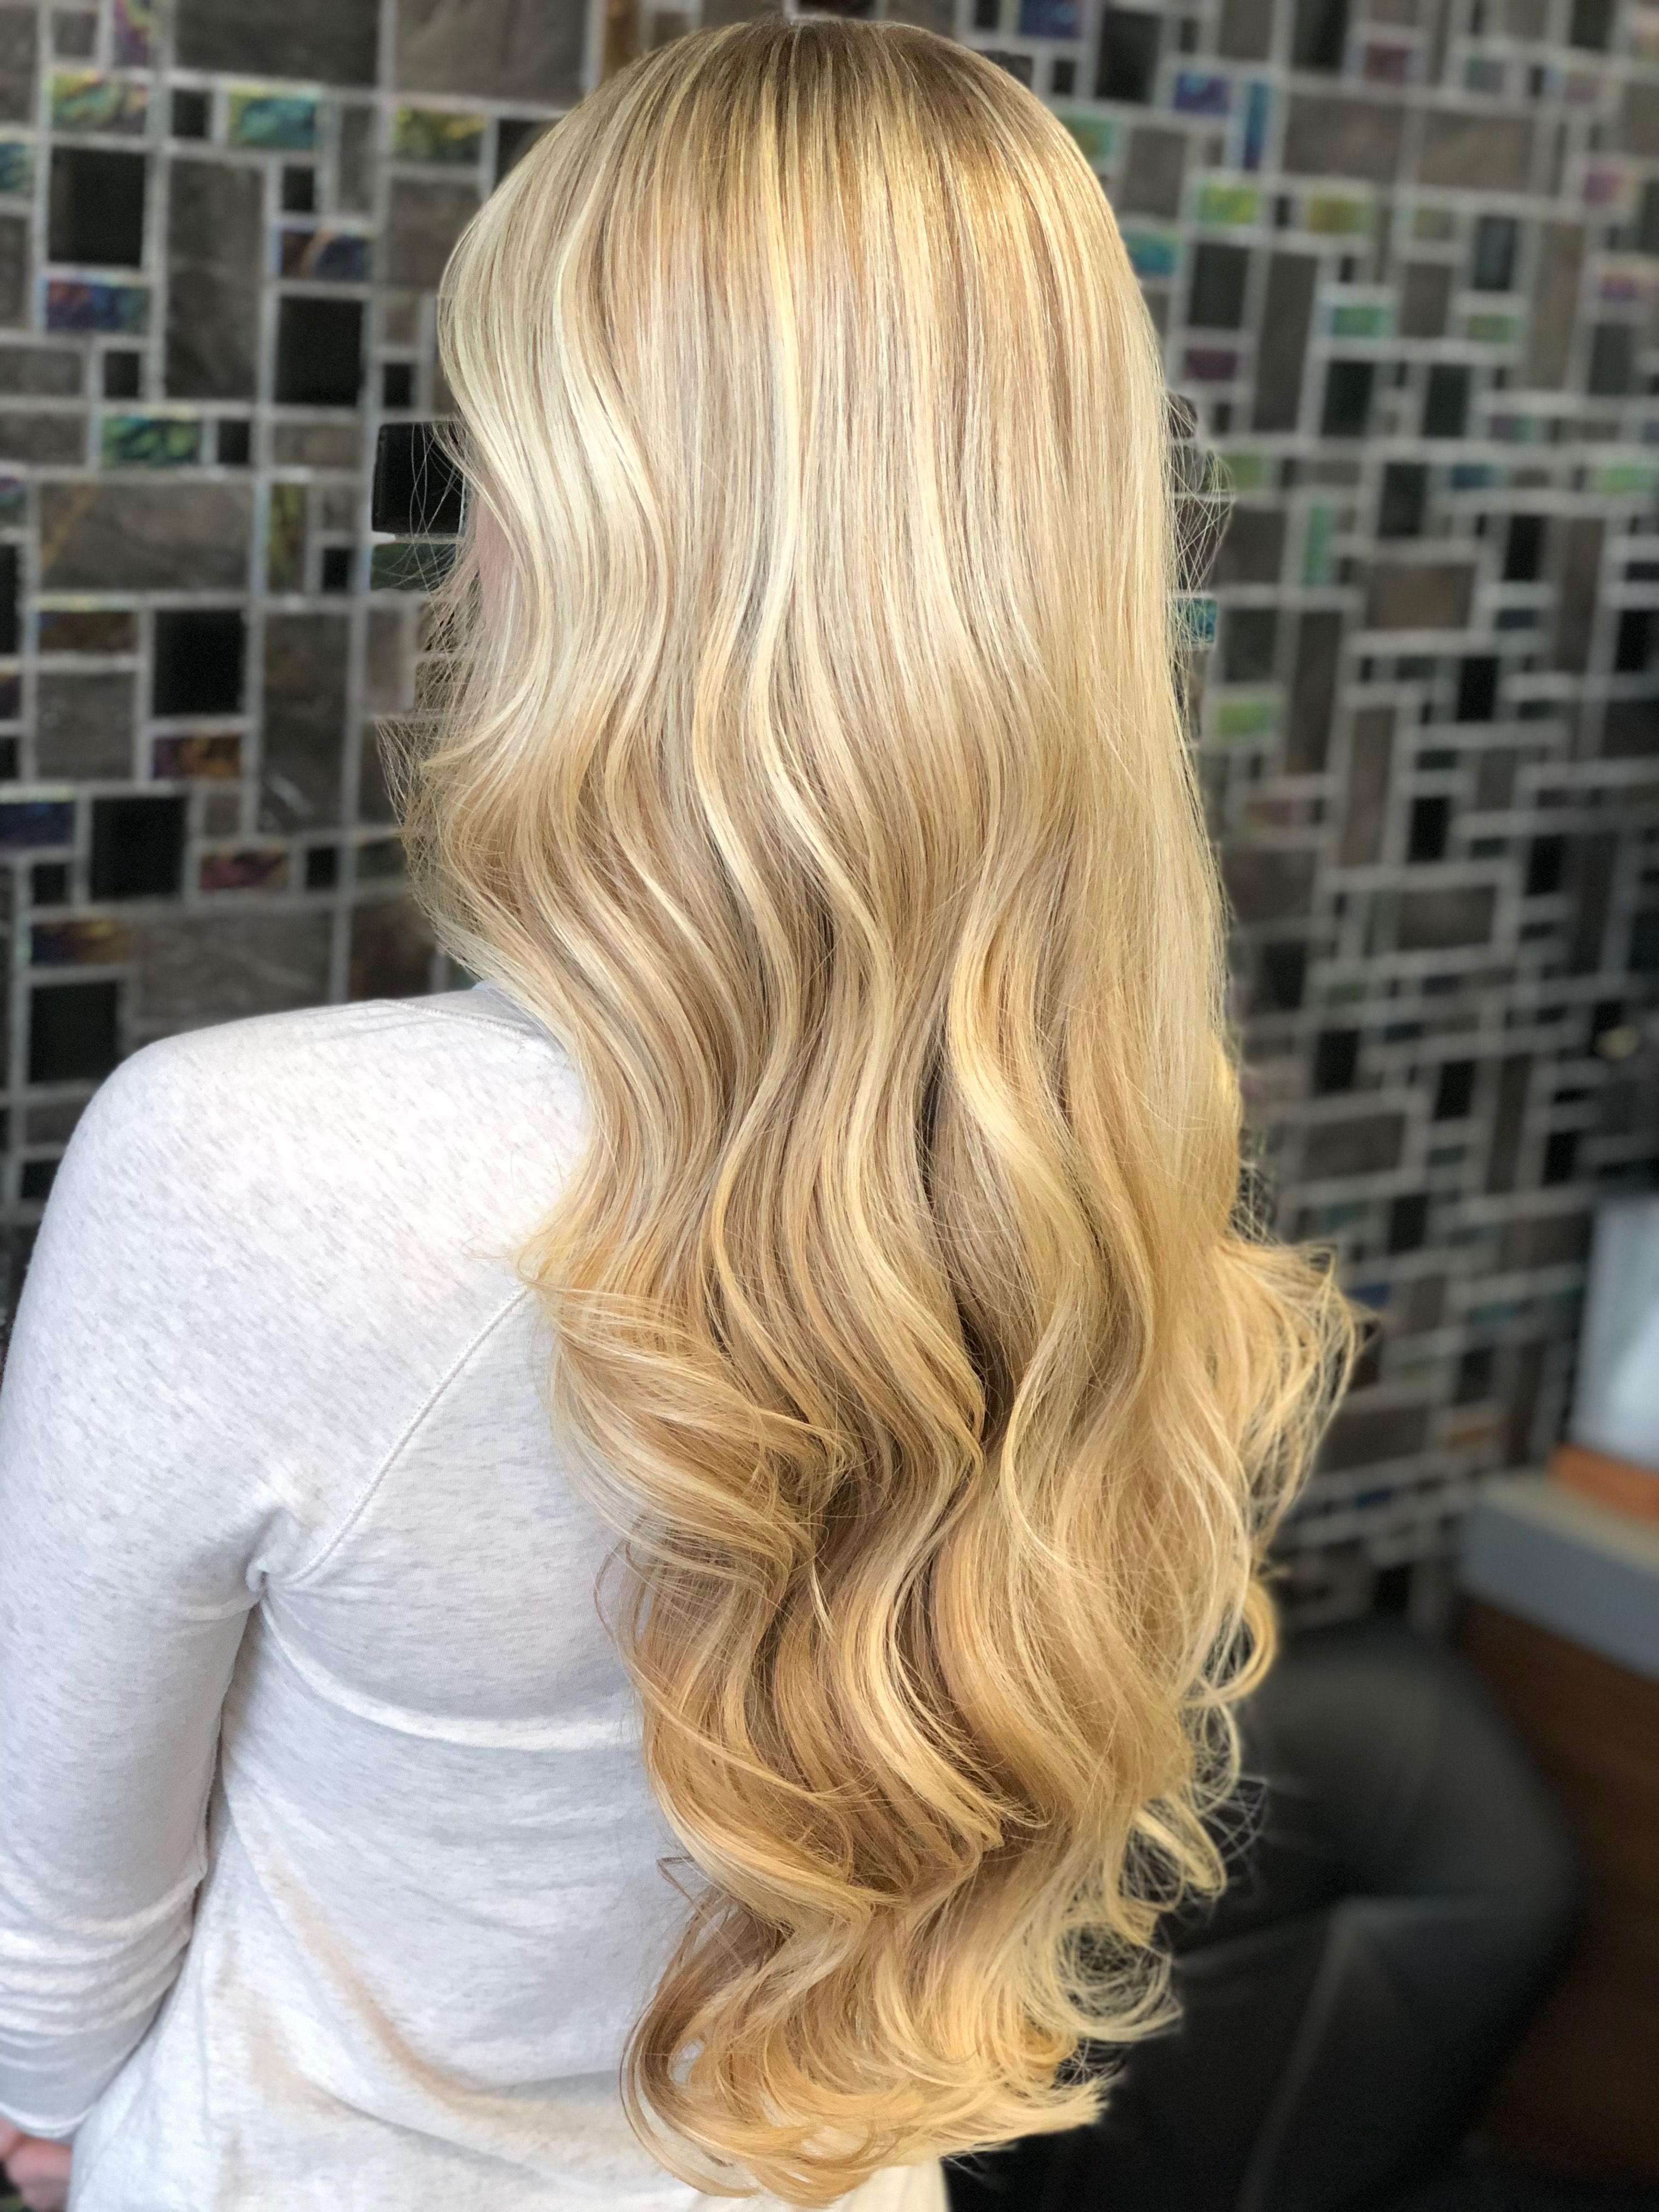 Pin By Chelsea Charters On Hair Yellow Blonde Hair Blonde Hair